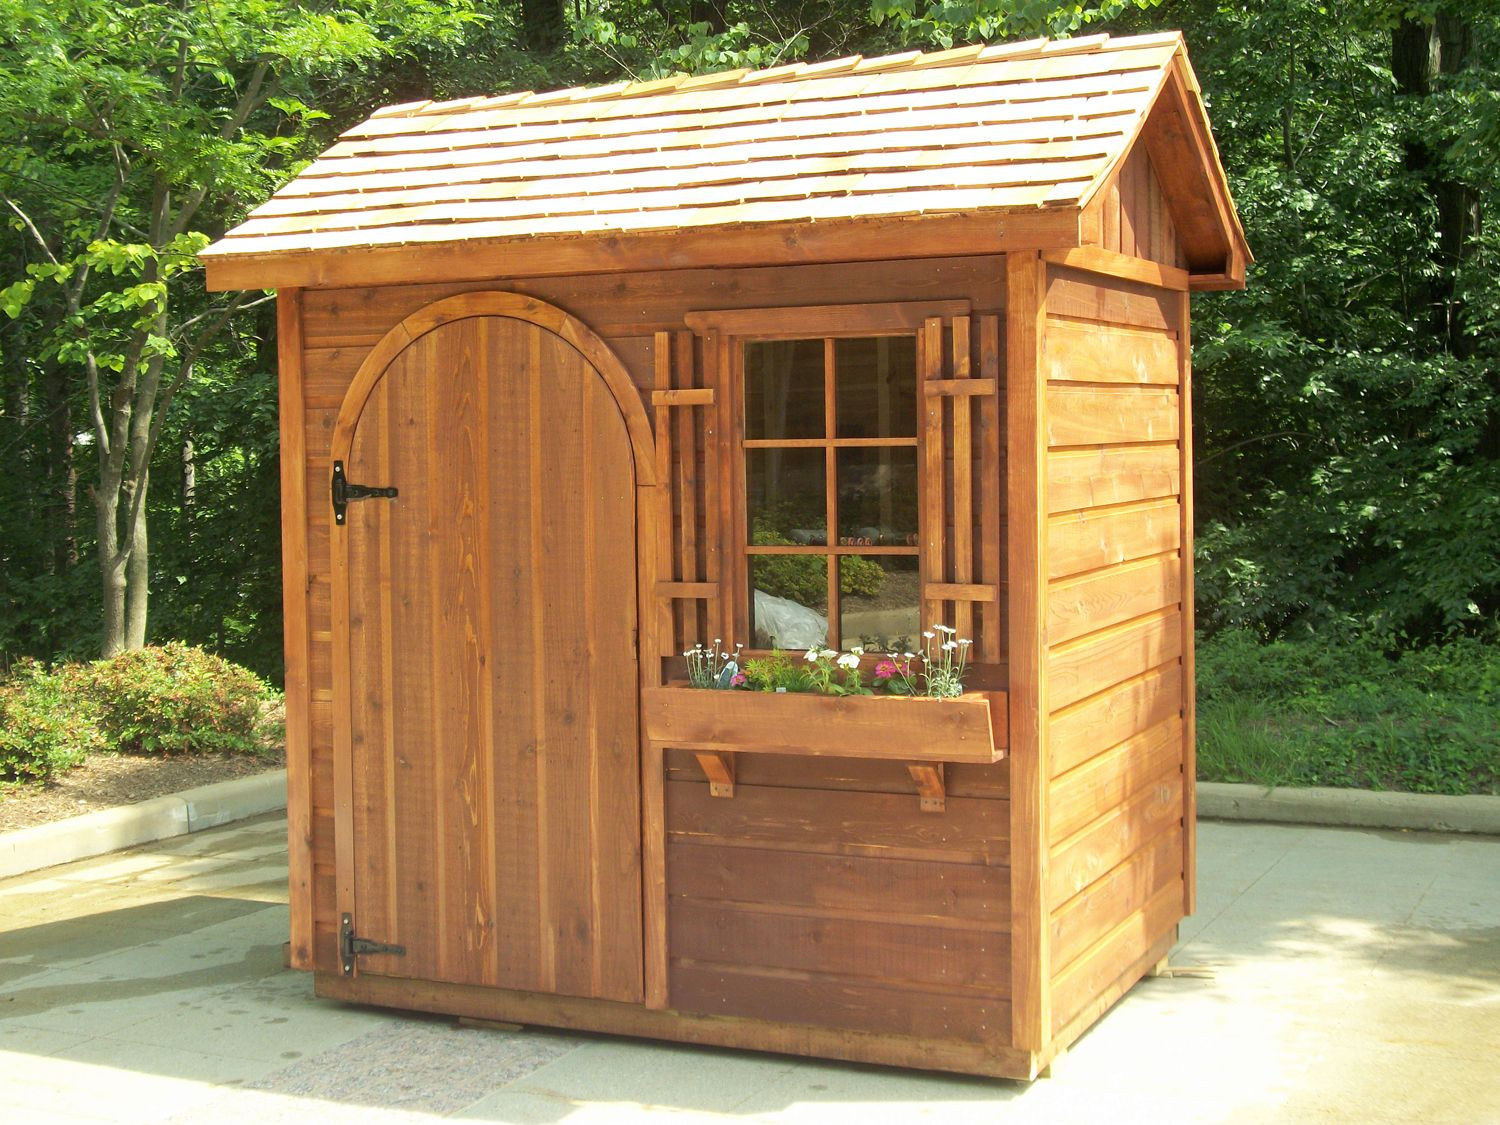 Ideas For Garden Sheds build garden shed ideas How To Build A Small Storage Shed Ehow Storage Sheds Are Perfect Places To